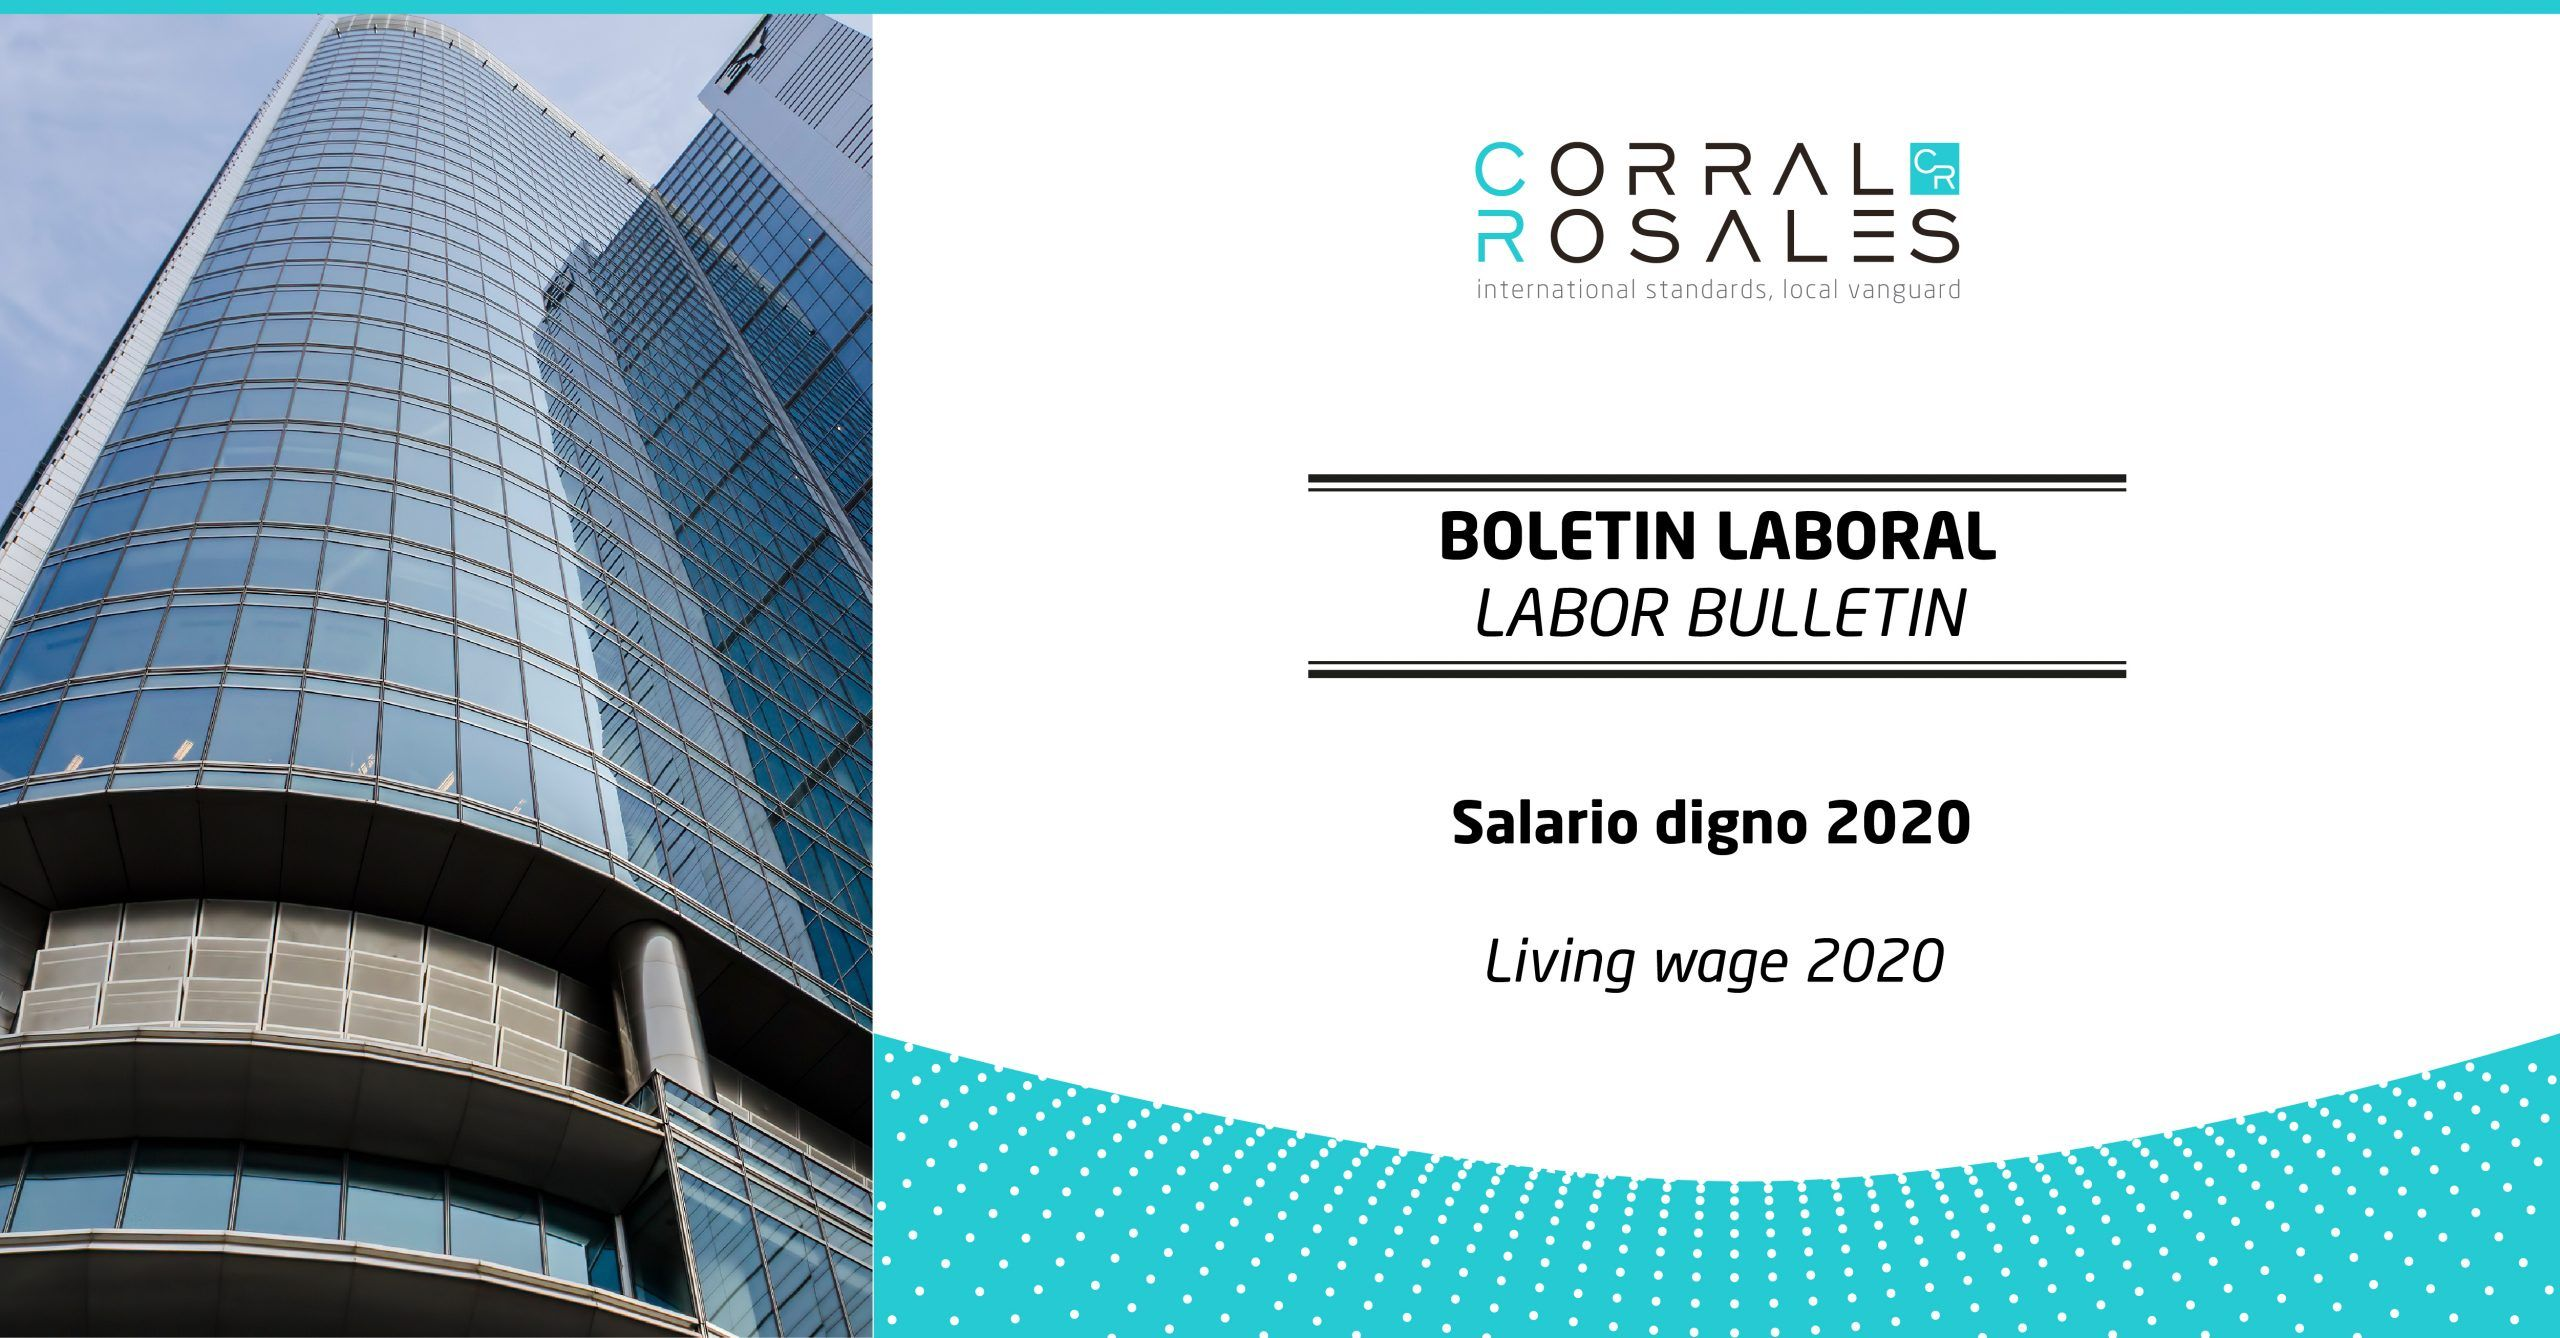 living-wage-2020-labor-bulletin-corralrosales-lawyer-ecuador